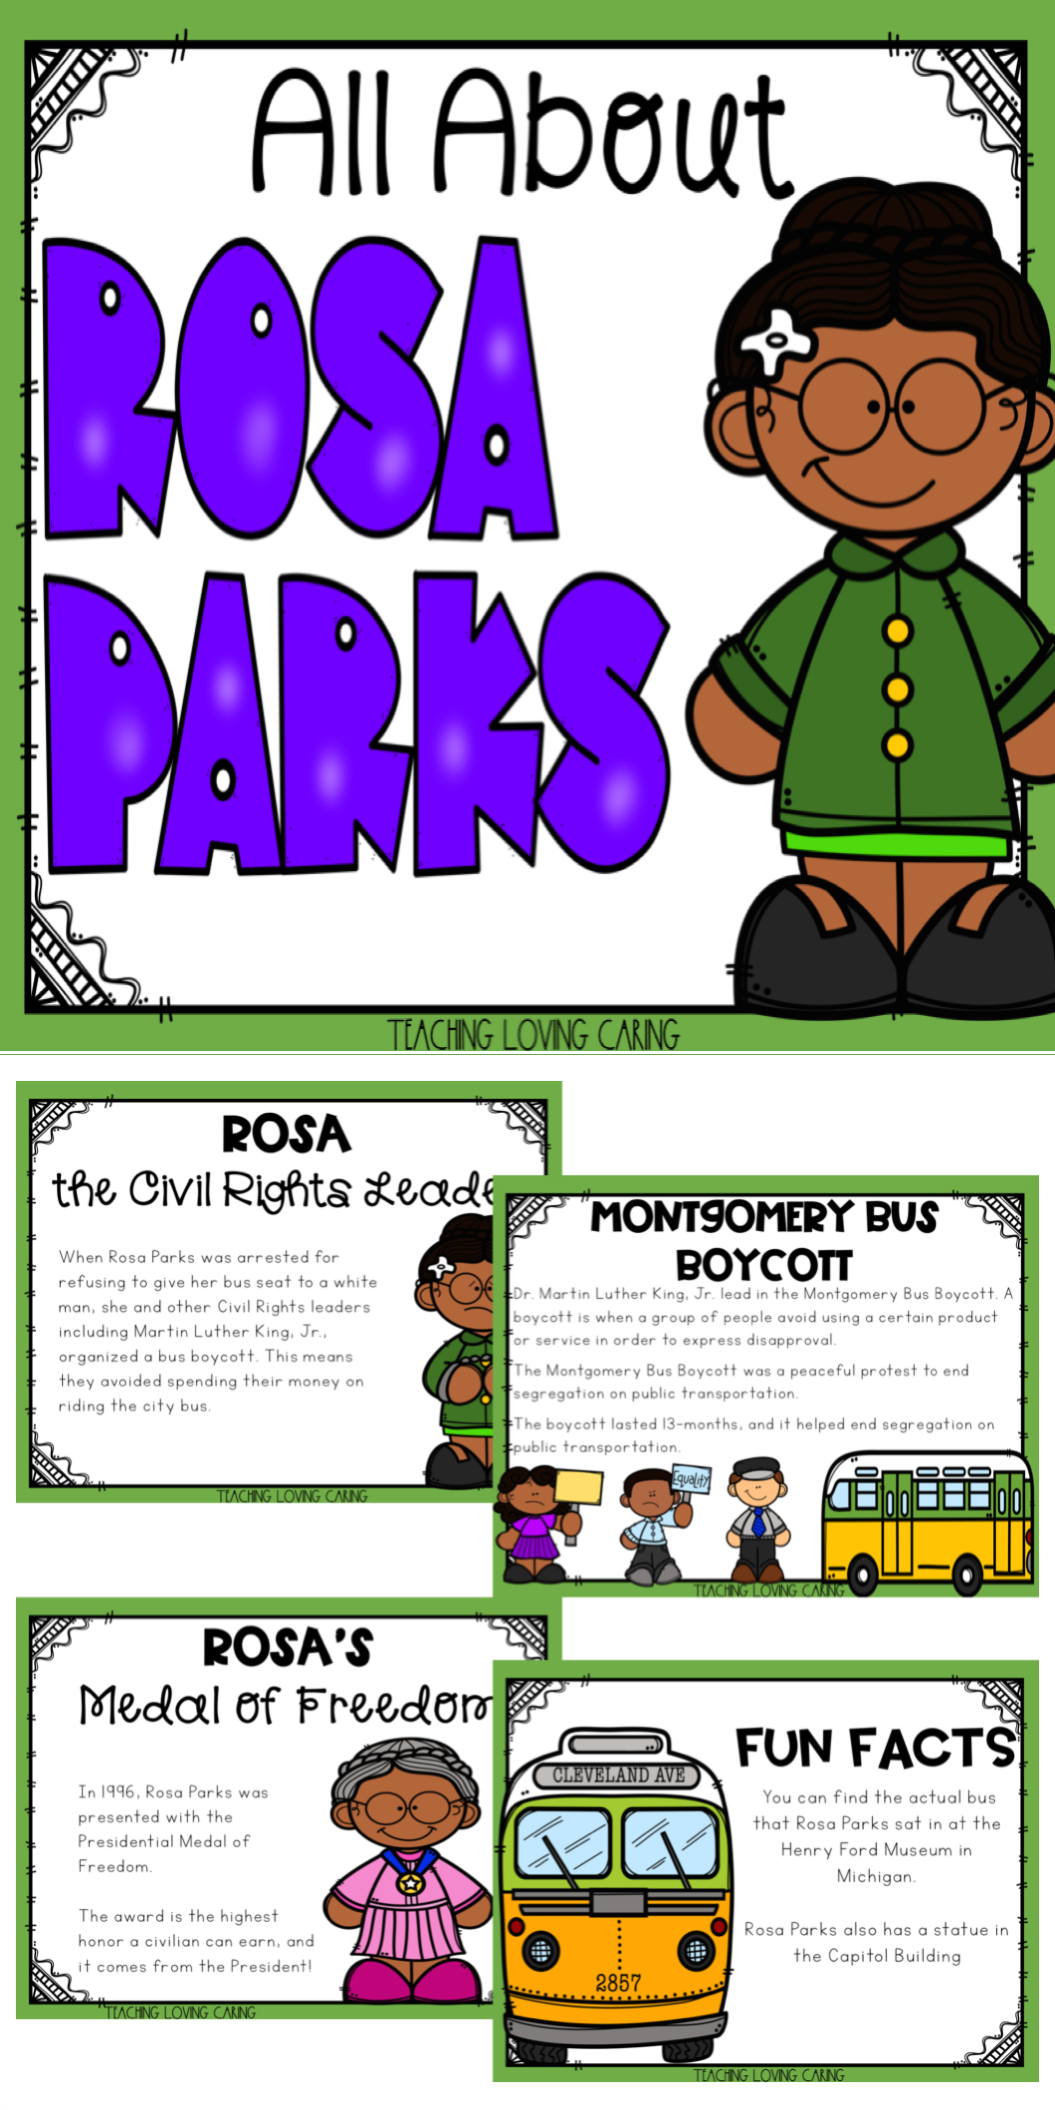 All About Rosa Parks